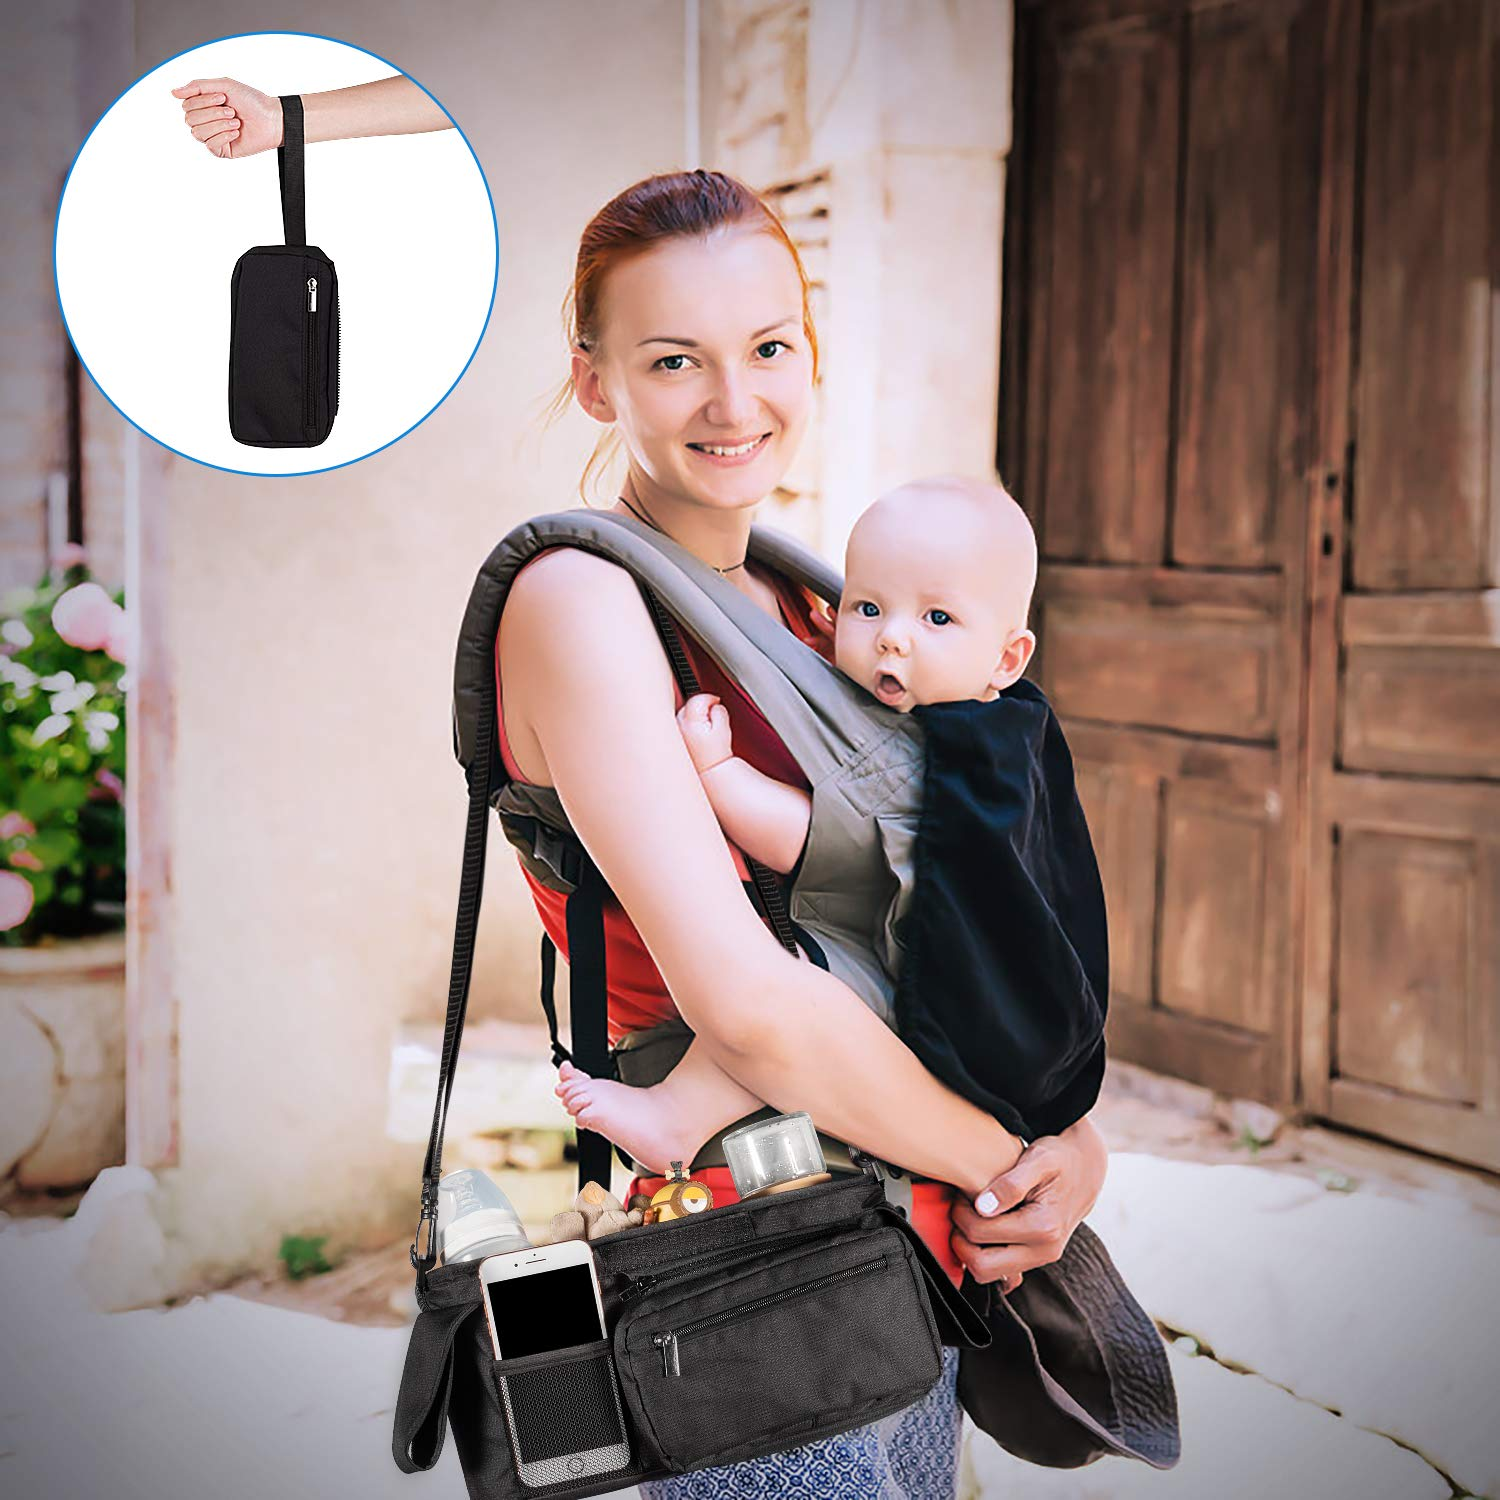 Britax for Carrying iPhone Baby Jogger Universal Stroller Organizer with Cup Holders Black Toys /& Snacks Fits Uppababy Lupantte Diapers Bag with Shoulder Strap Bugaboo and BOB Stroller.